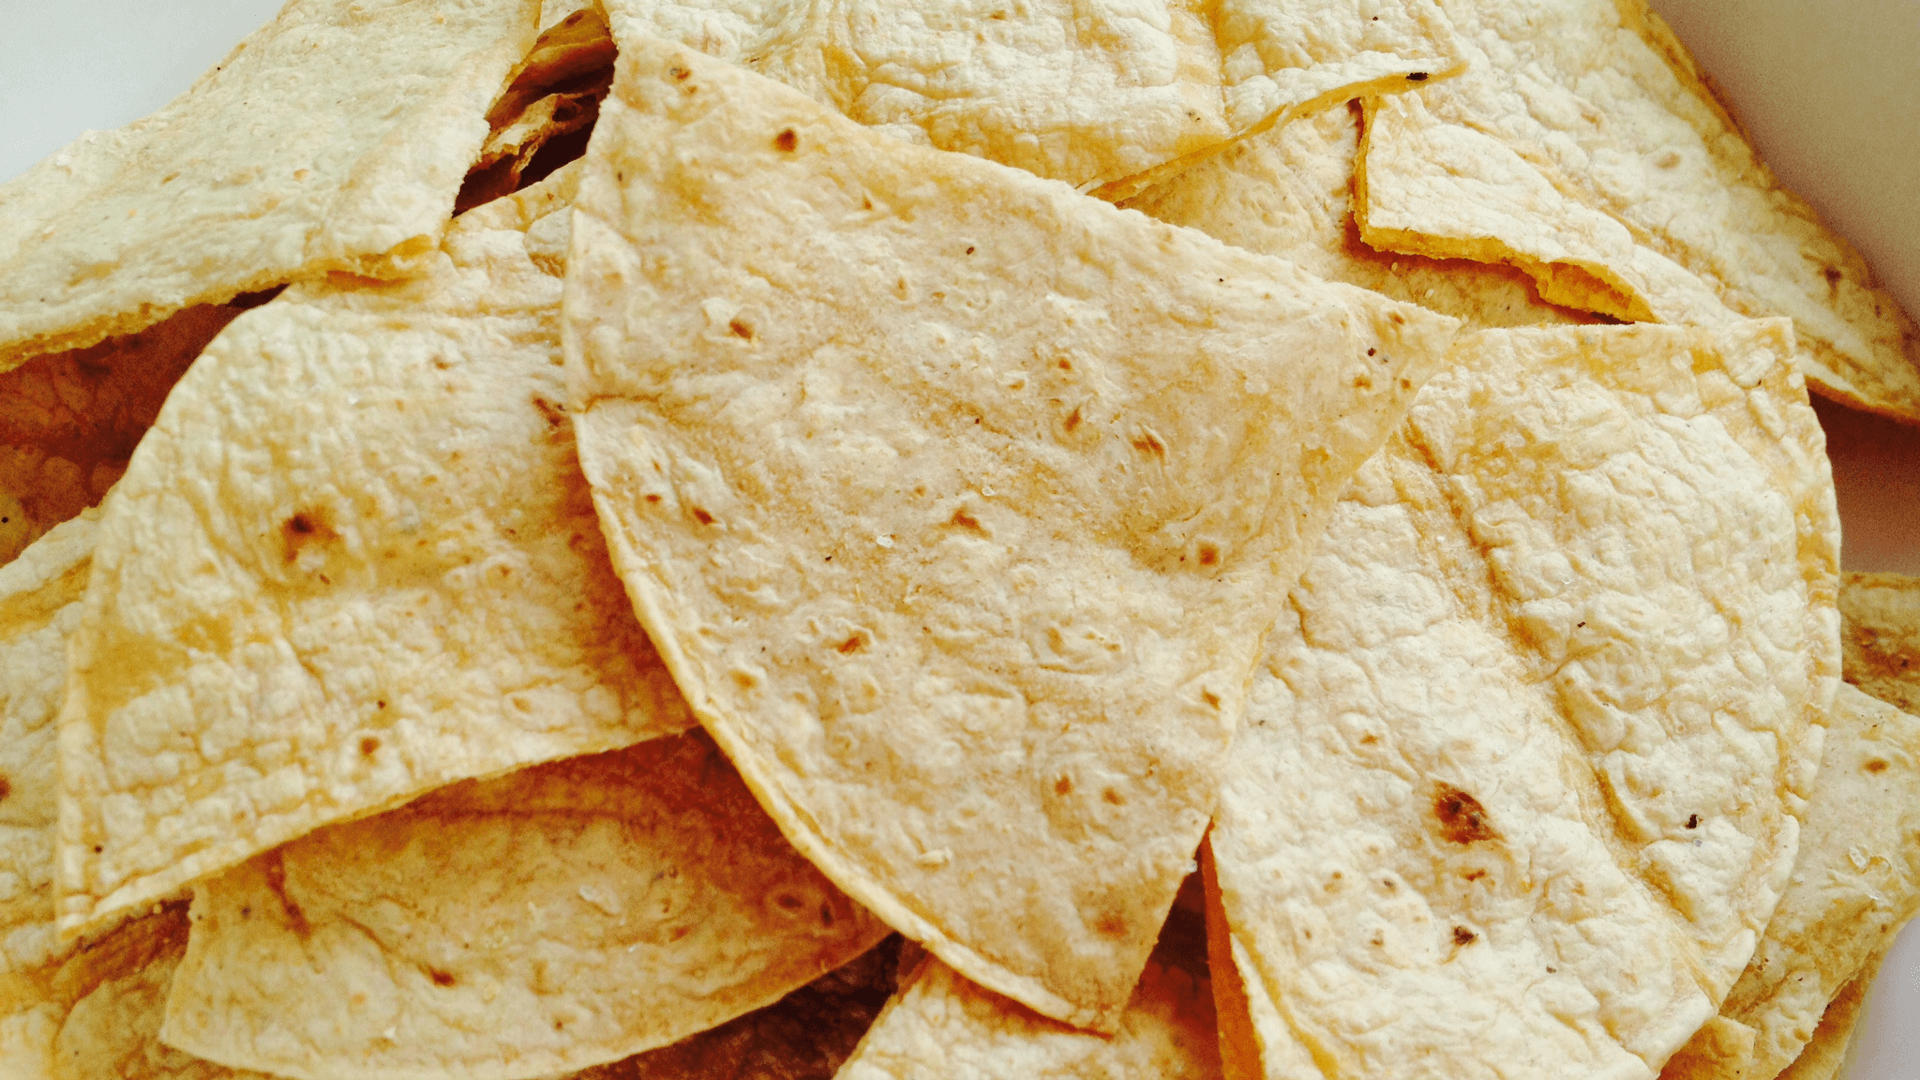 Baked Tortilla Chips Free PD Recipe - Protective Diet